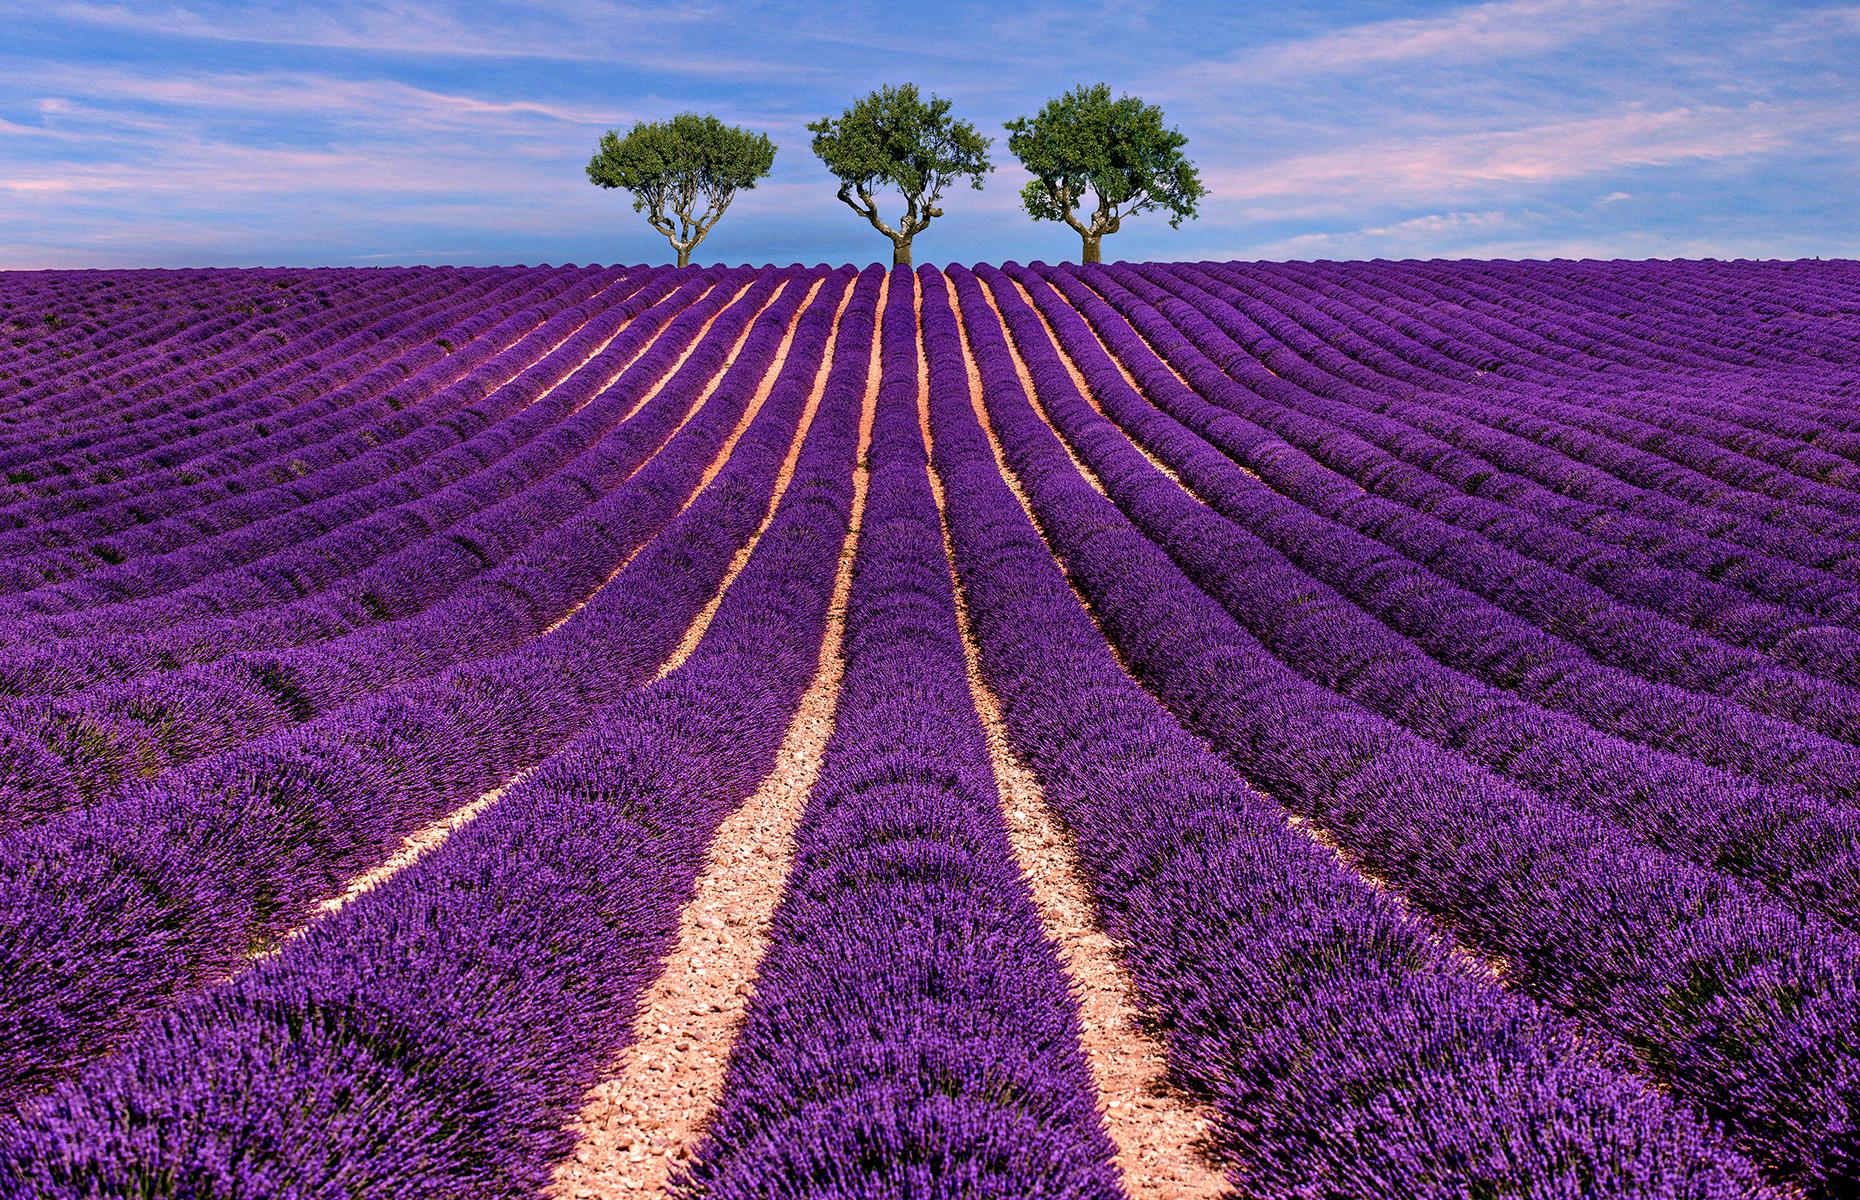 Slide 11 of 43: The lavender fields of France's Provence region explode in a fragrant haze of purple from around mid-June up until August (though they're at their peak in early July). The most concentration of lavender fields is on the high plateau around Sault, at the foot of the Mont Ventoux and around Apt and Gordes. Lavender is an important part of life in Provence as it has countless uses, from beauty products and soaps to aromatherapy, as a natural remedy and even in cooking. These are the most wonderful views on Earth.